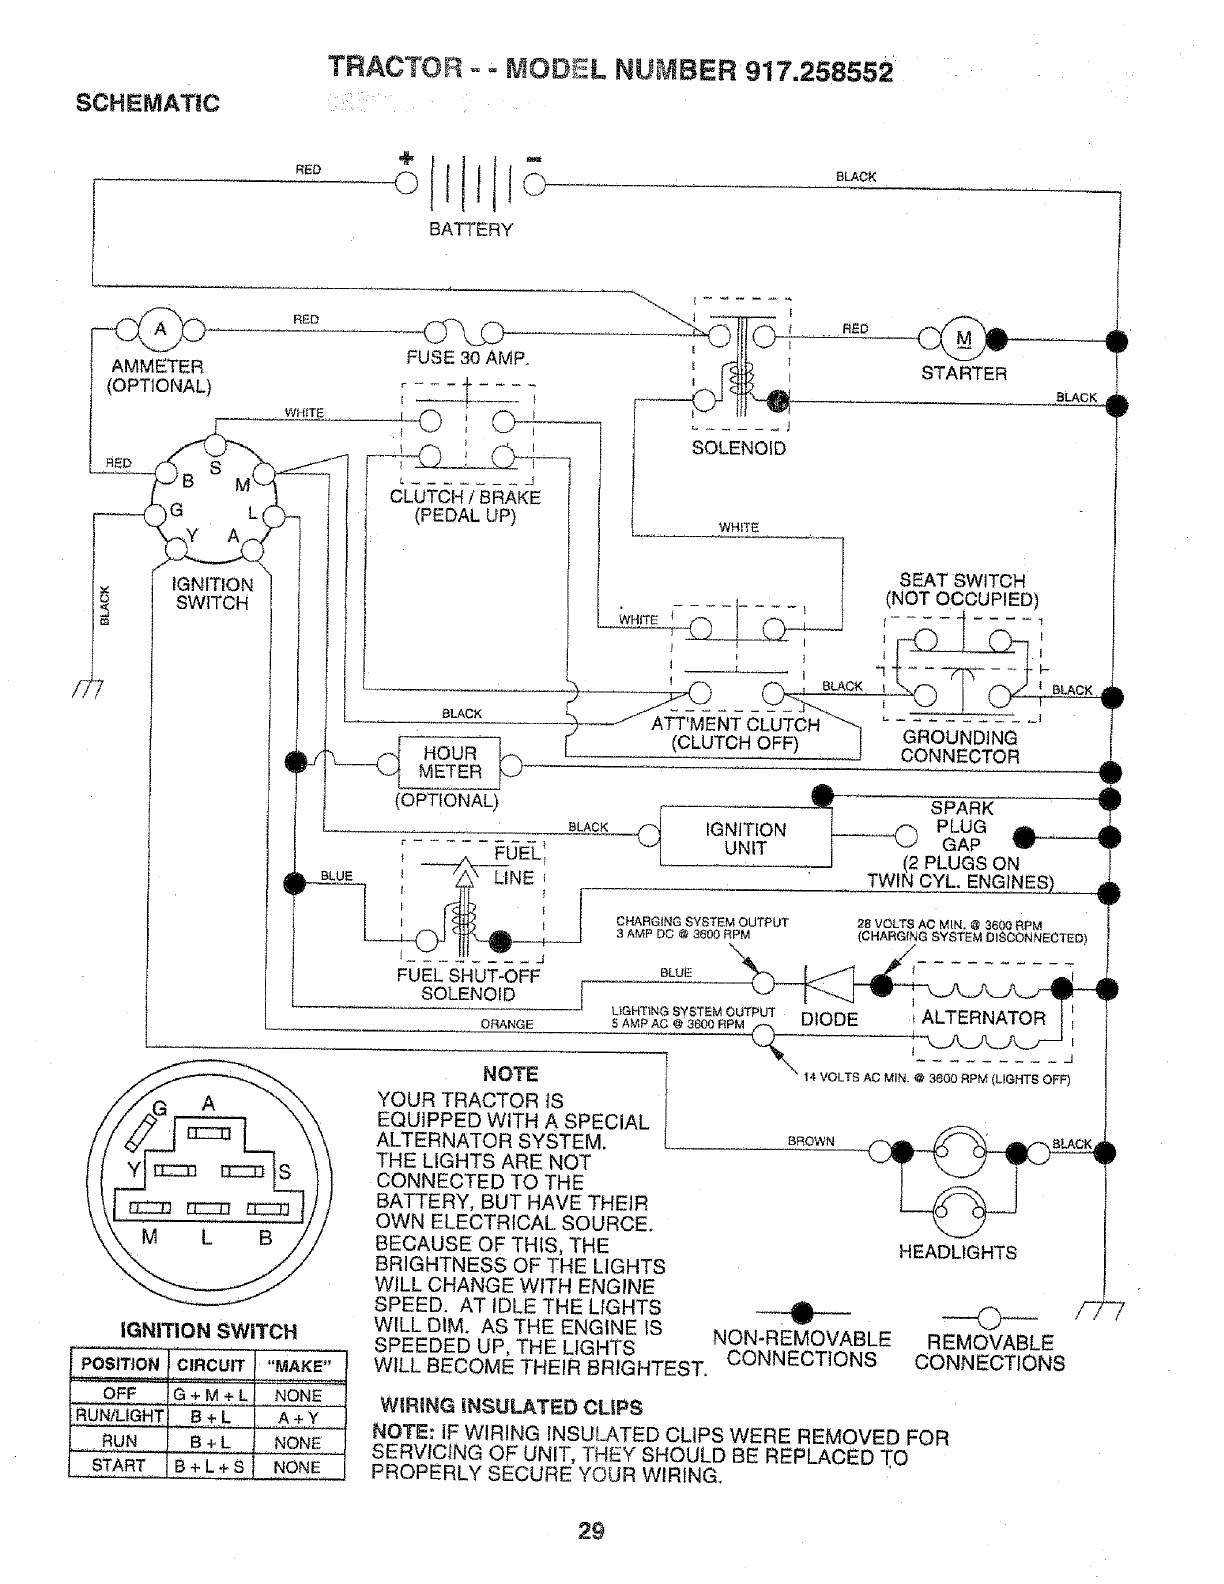 Page 29 of Sears Lawn Mower 917.258552 User Guide | ManualsOnline.com